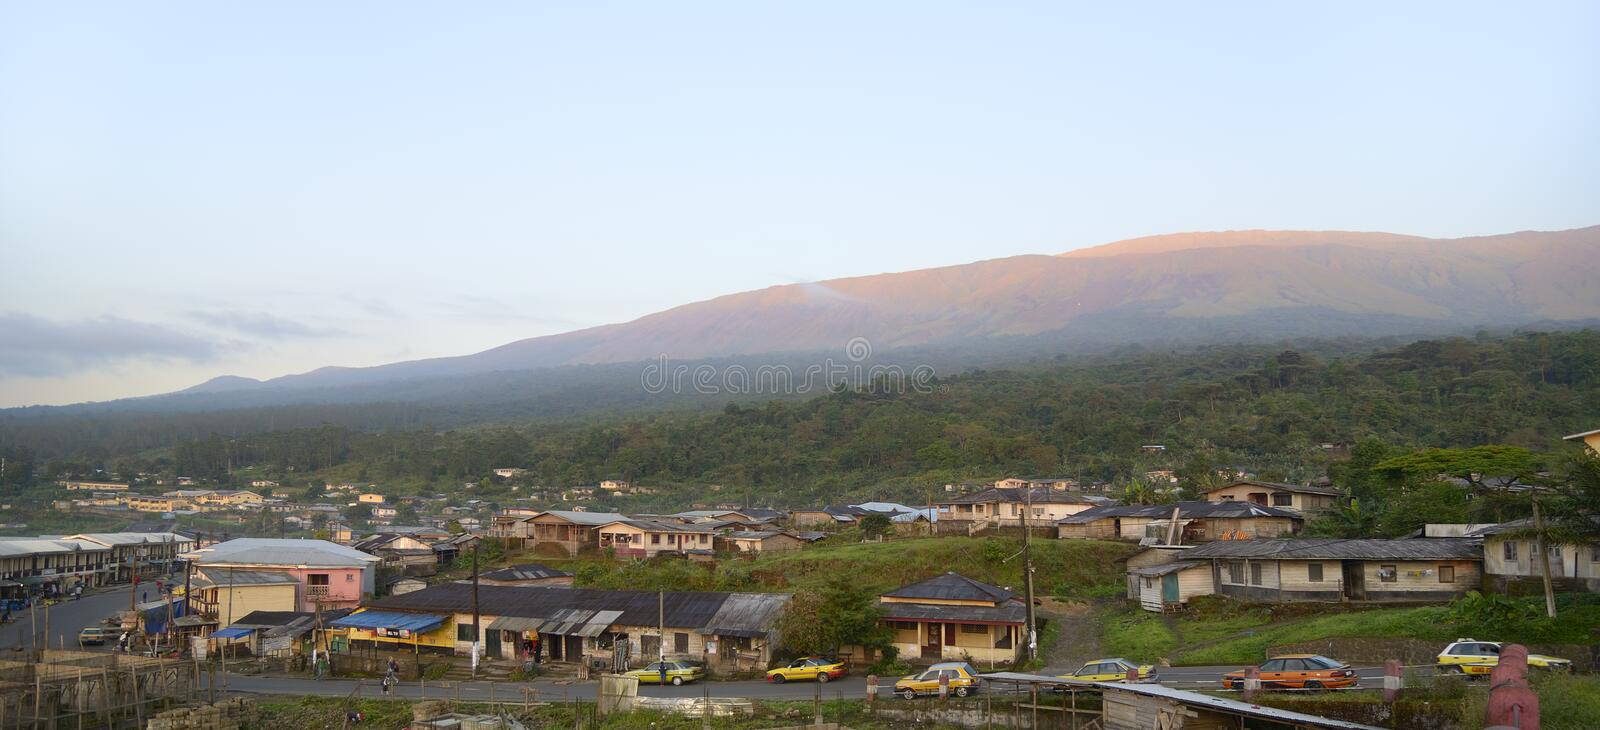 Buea Mount Cameroon, morning. Mount Cameroun, Buea, Old town, December2012 royalty free stock image